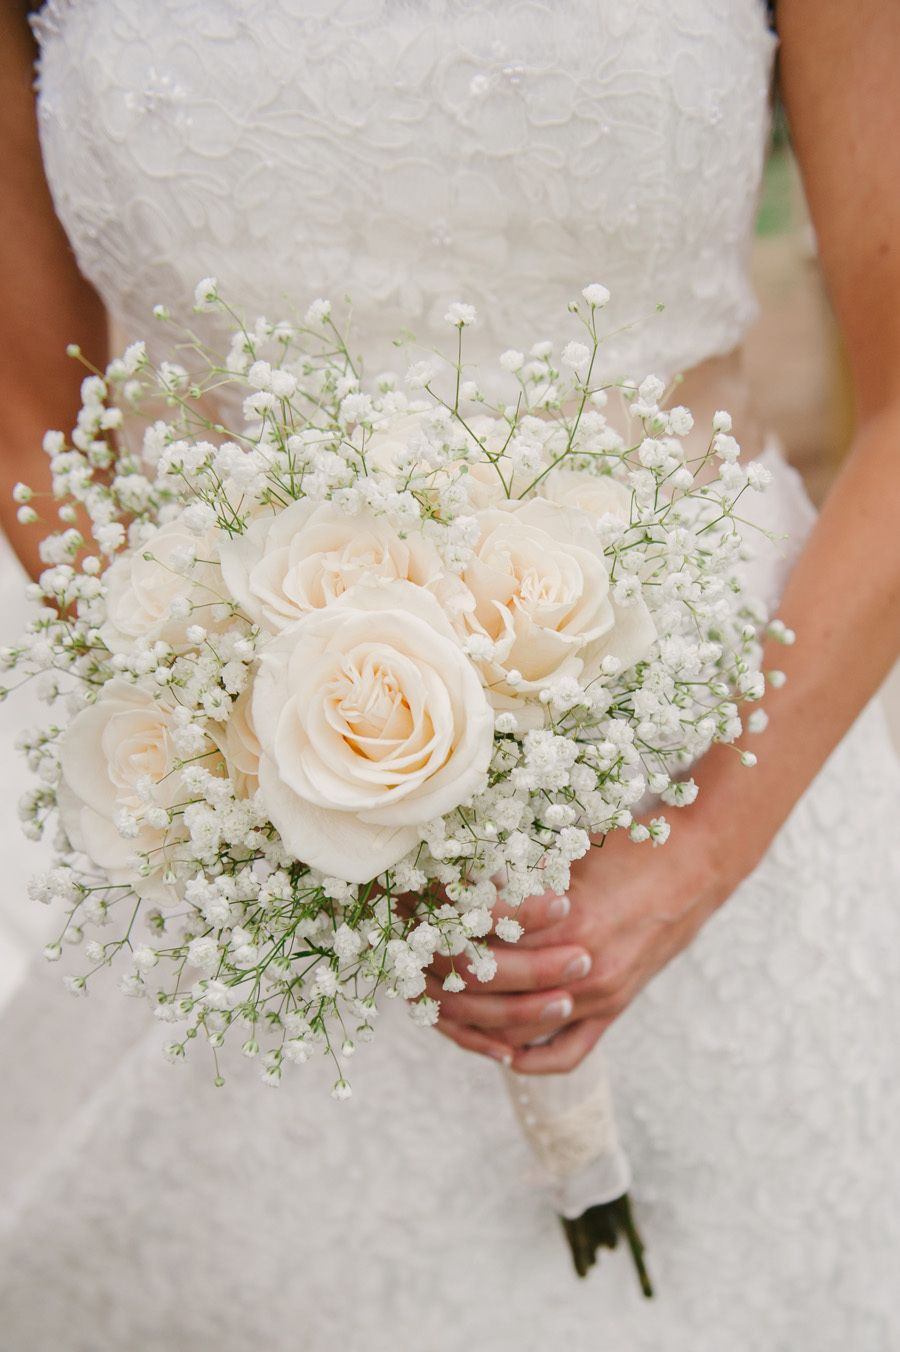 A simple bouquet of ivory roses and babys breath photo via project a simple bouquet of ivory roses and babys breath photo via project wedding more izmirmasajfo